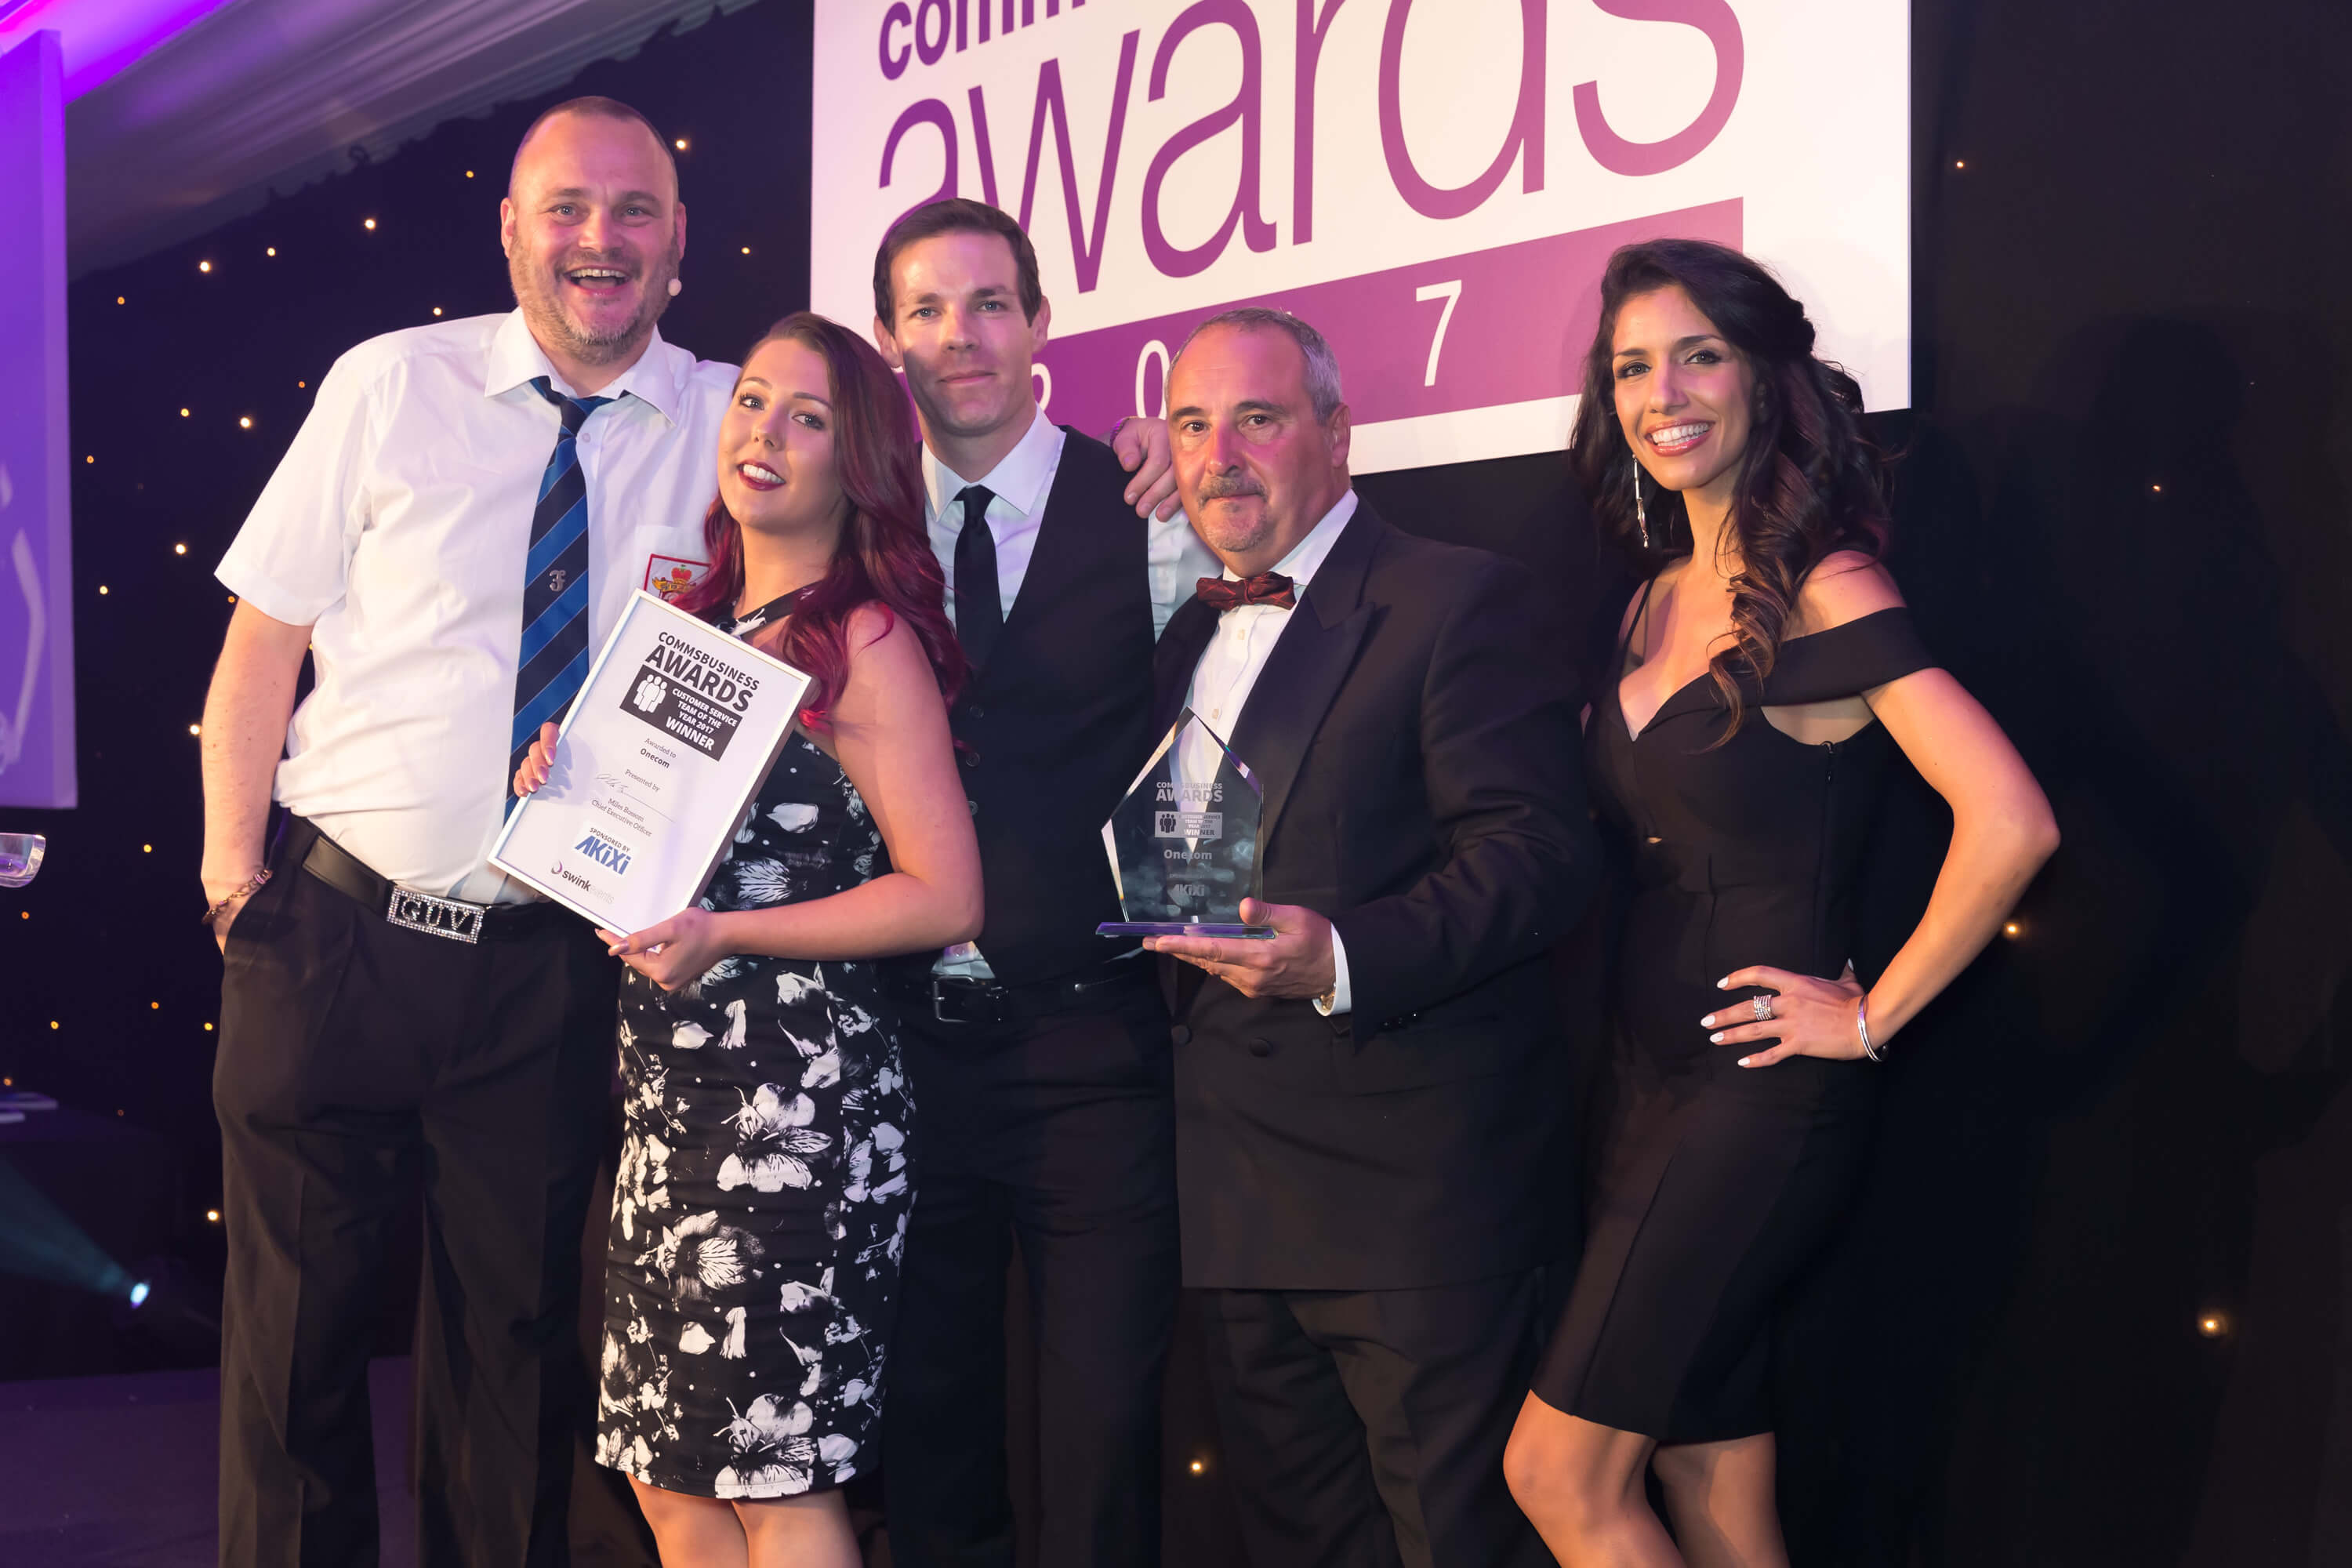 Onecom's customer services recognised with major industry award